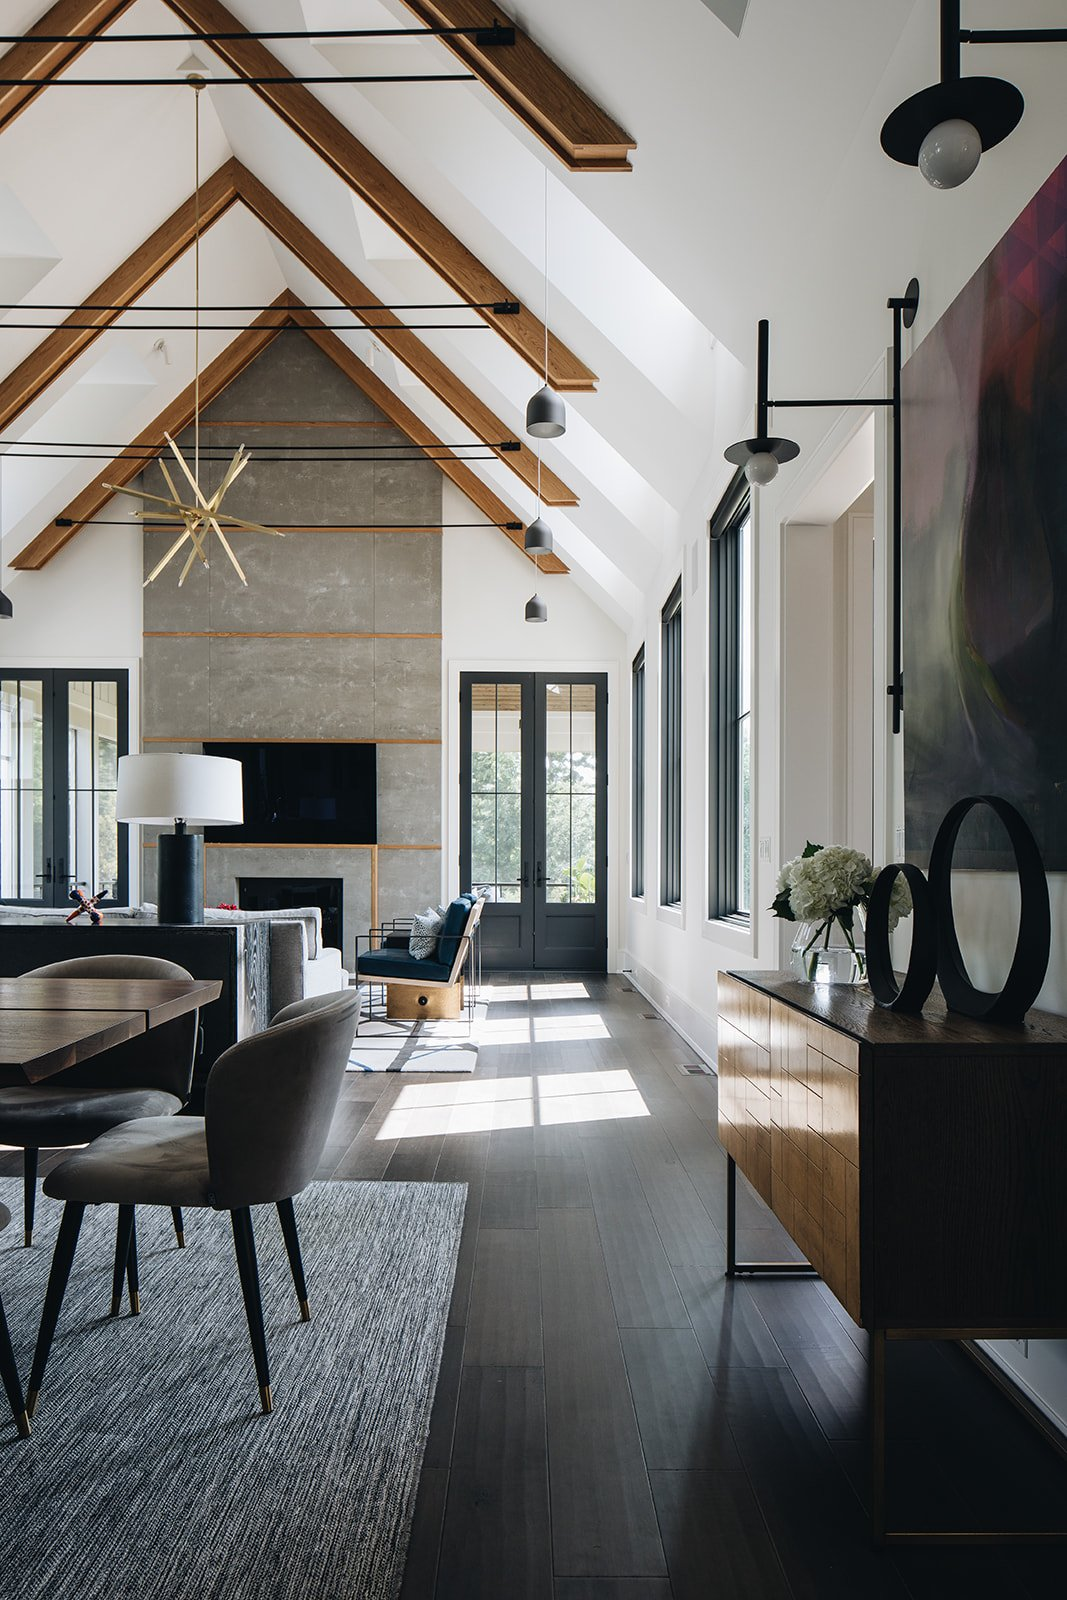 Image of great room in Aspen vs Wheaton showing lighting